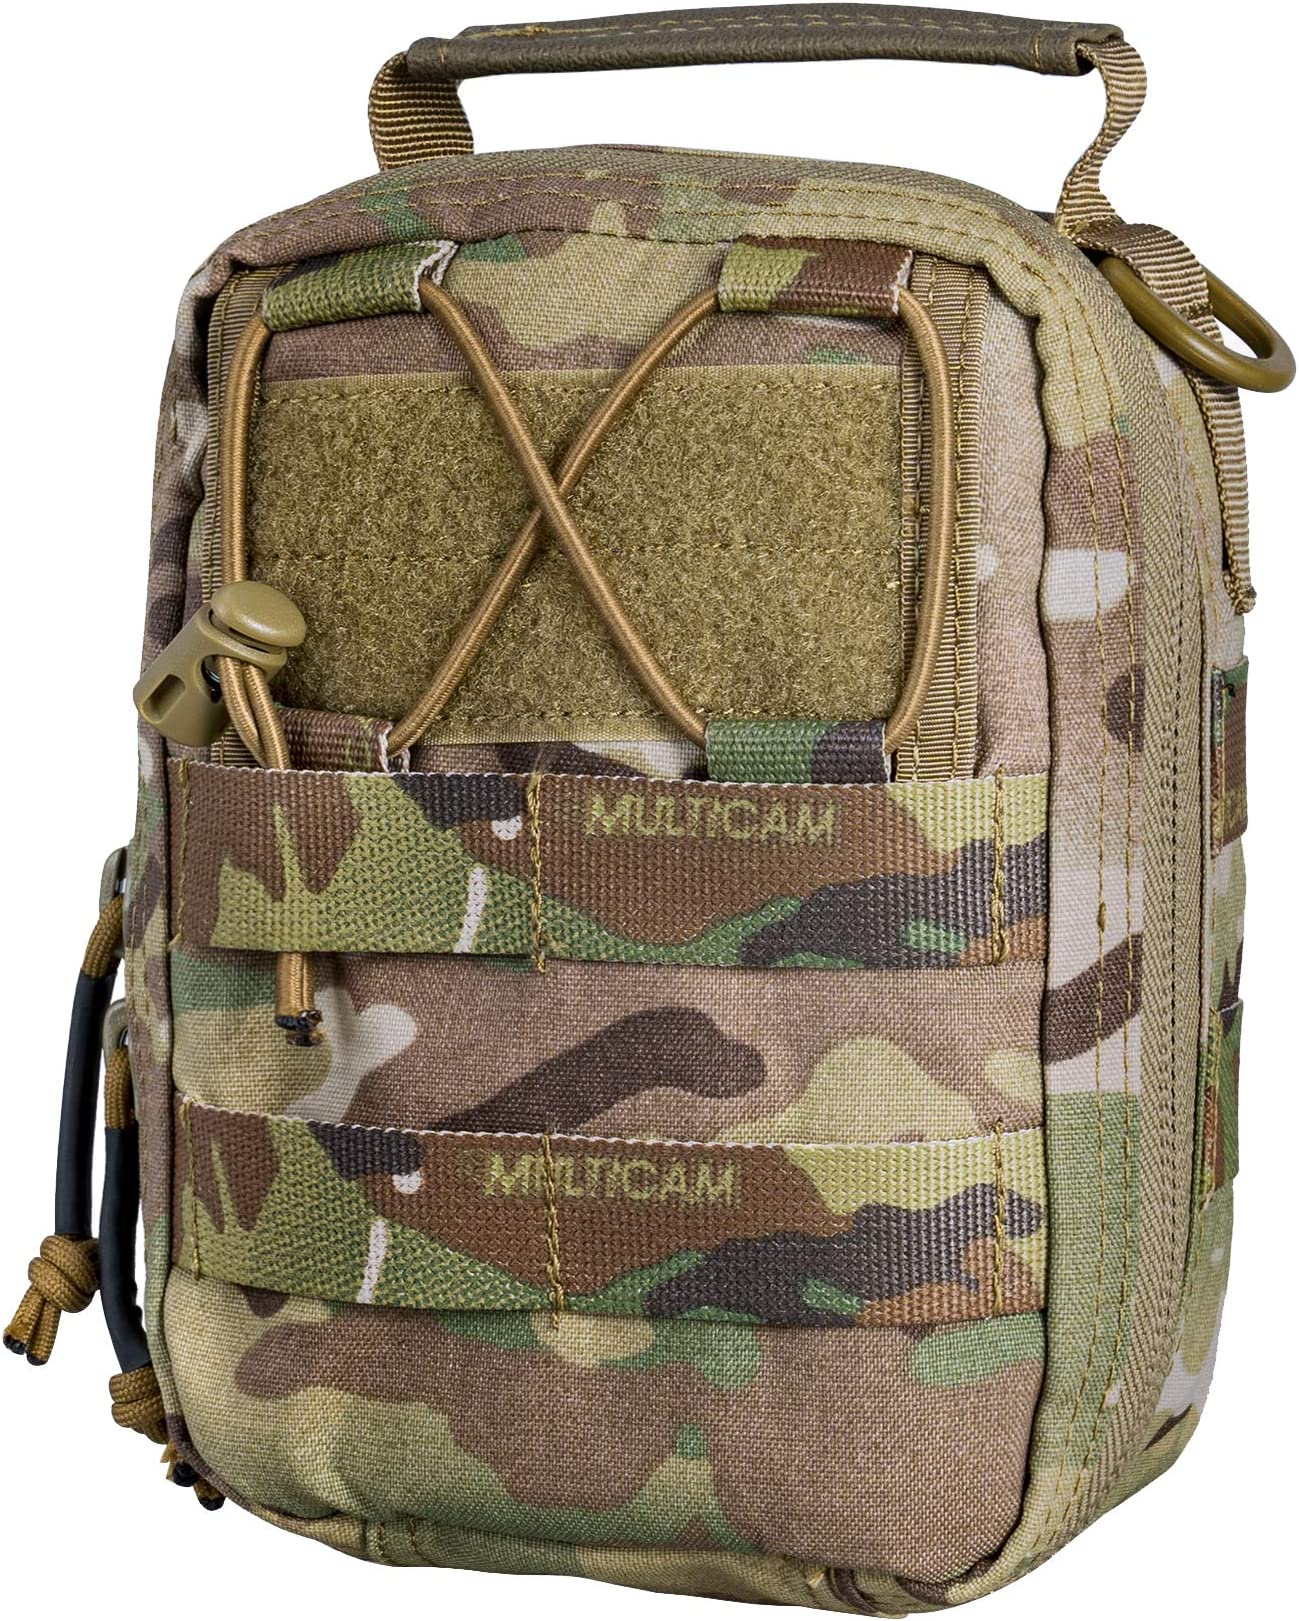 Utility Tactical Airsoft Pouch Military Camping Hiking Molle Mesh Bag Camo